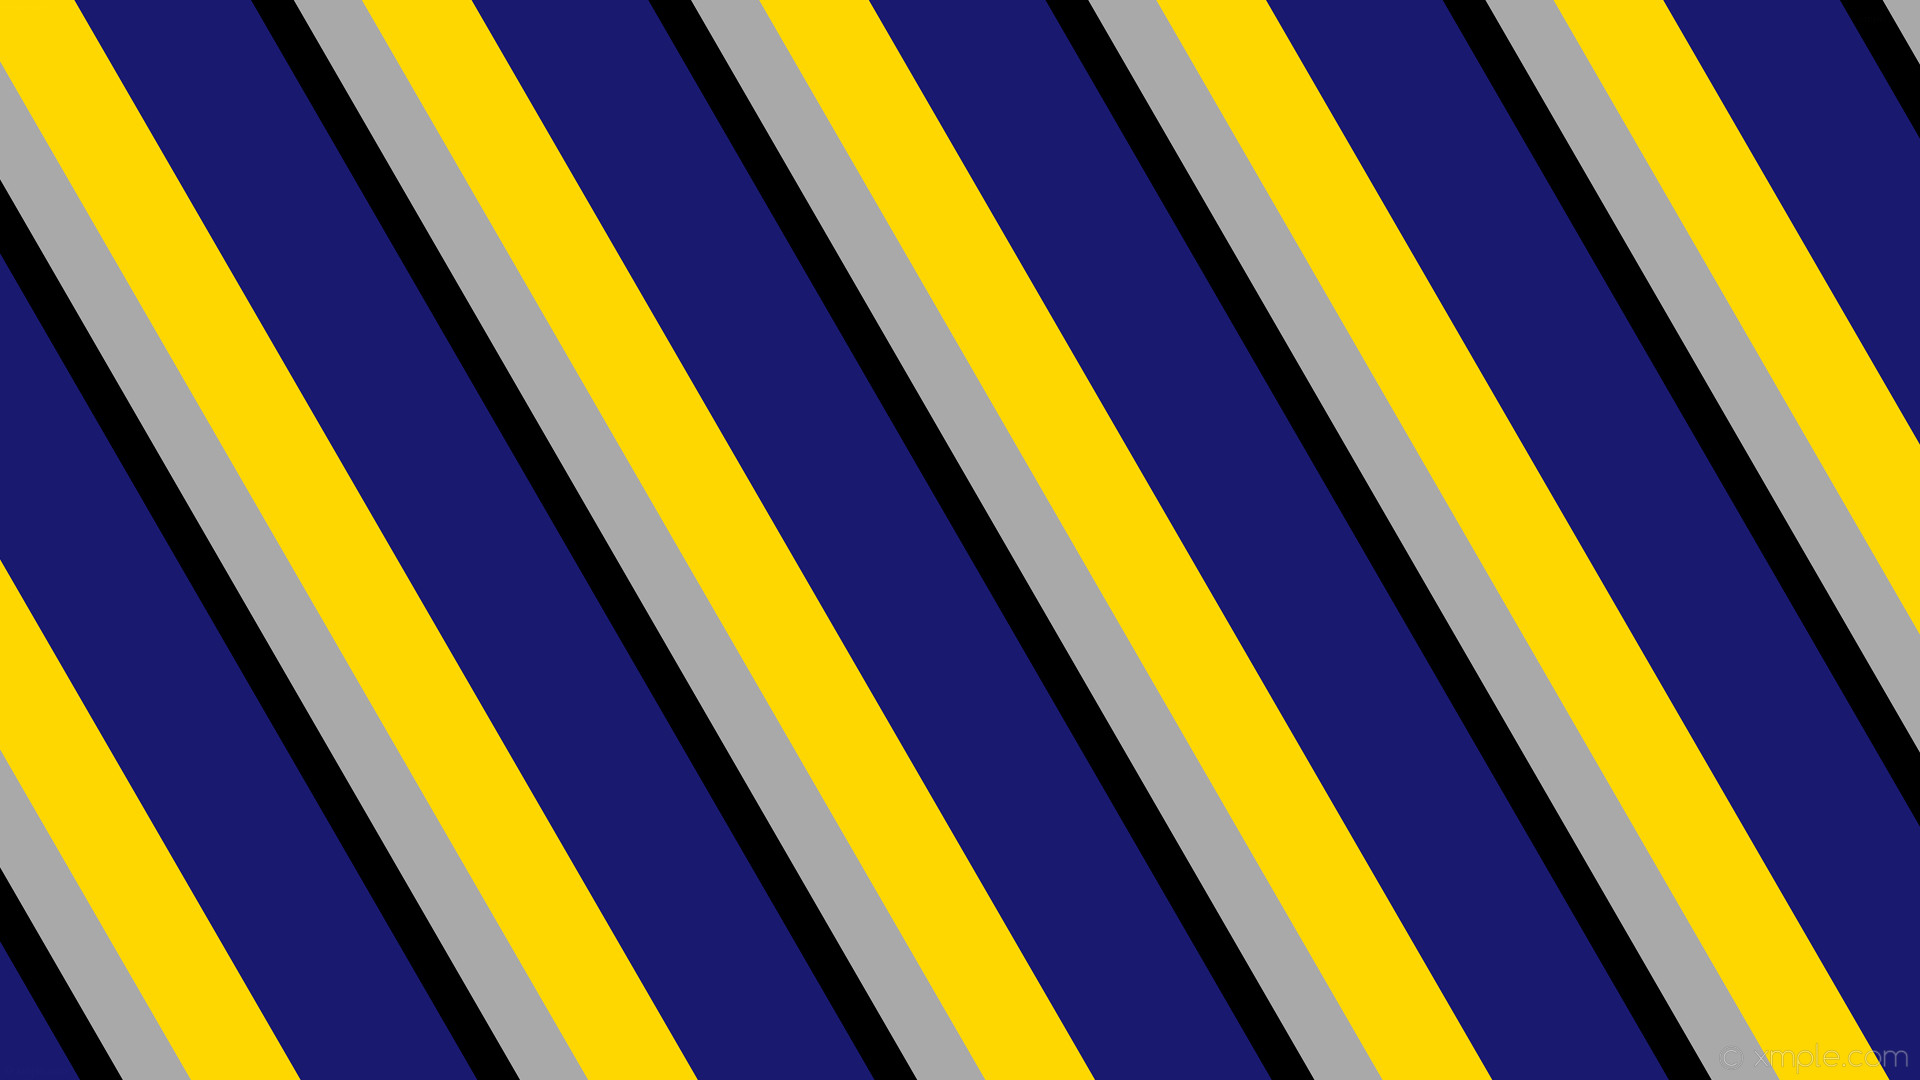 Blue And Yellow Striped Wallpaper: Gold And Blue Wallpaper (59+ Images